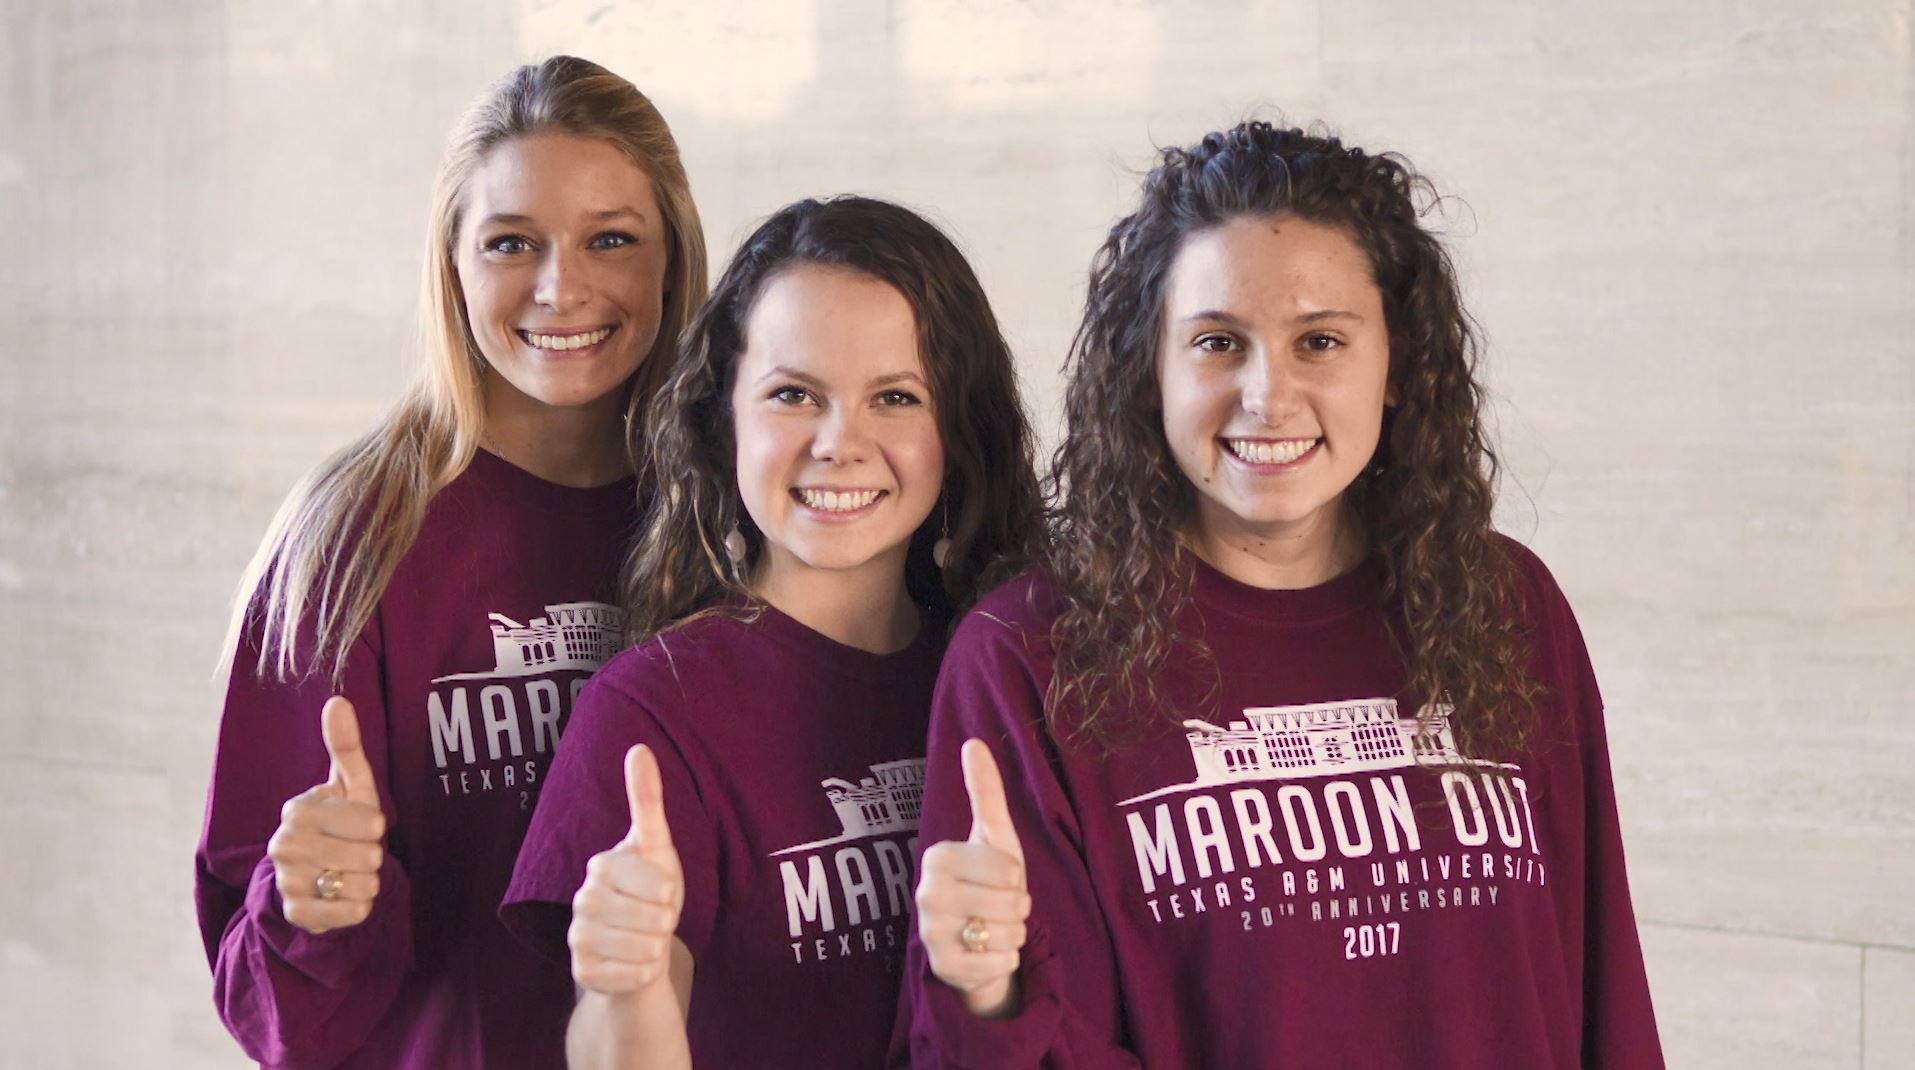 Century Club Impact Moment - Maroon Out